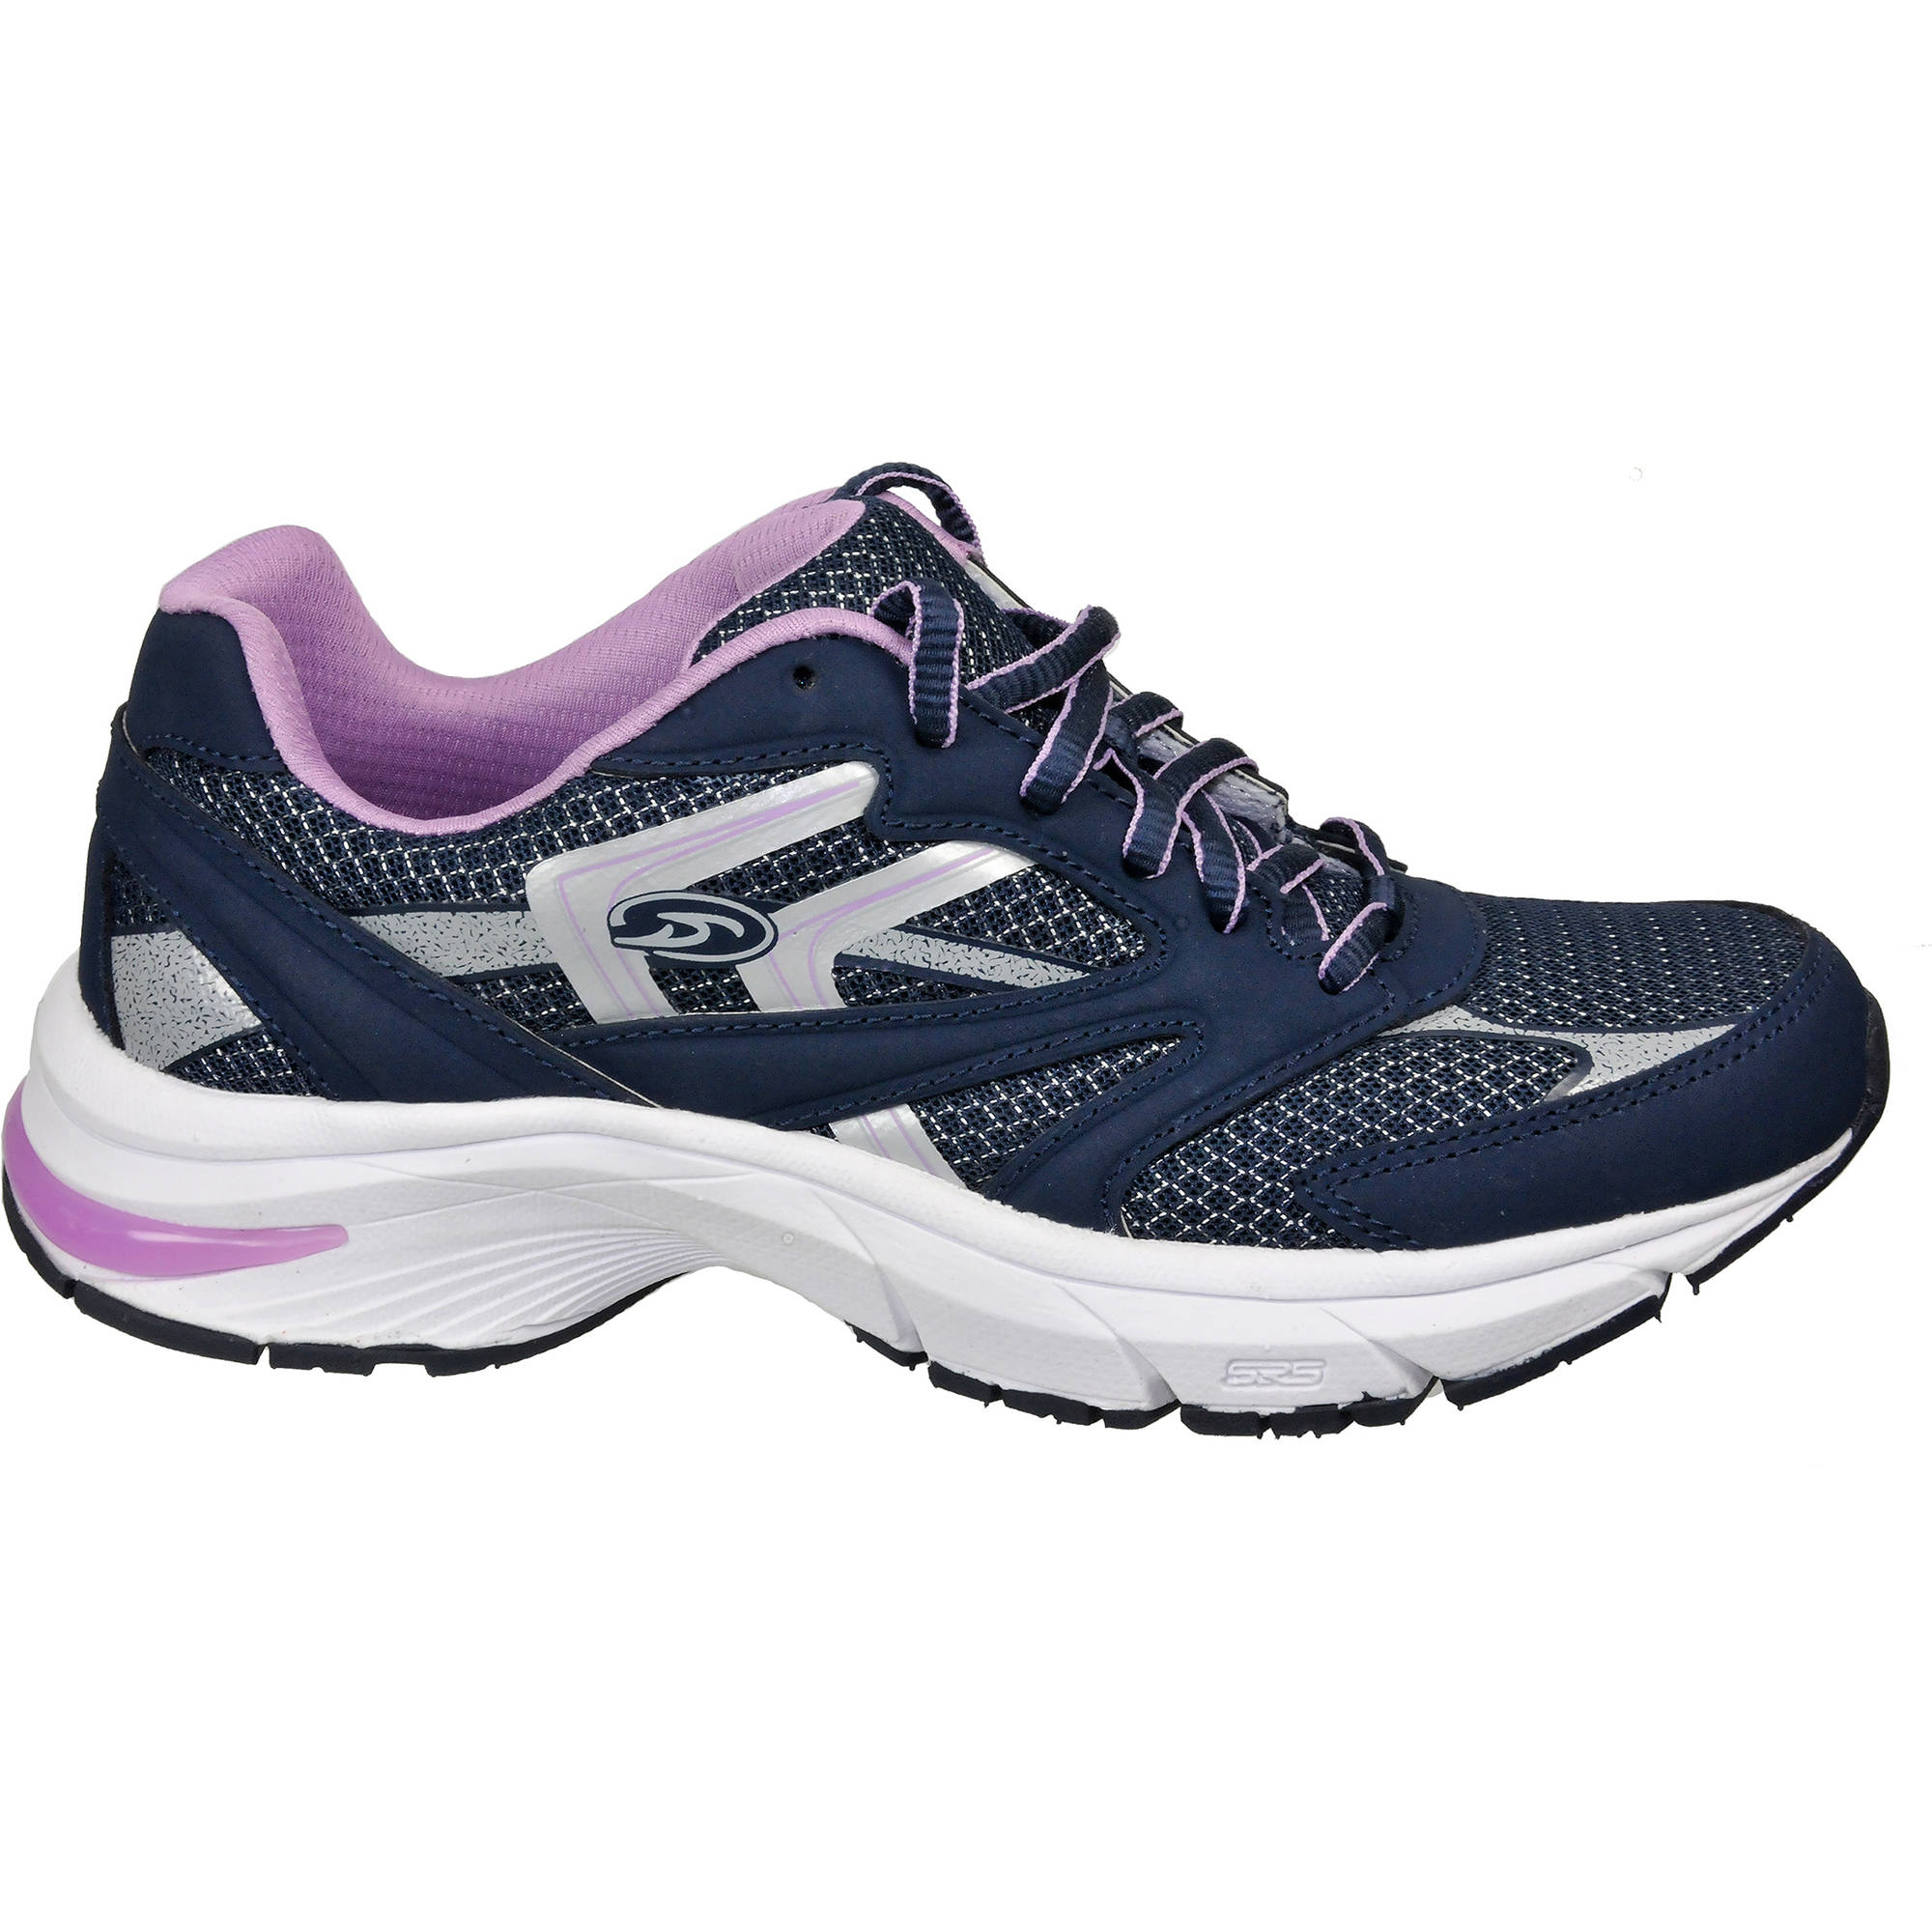 Dr. Scholl's Women's Preset Athletic Shoe